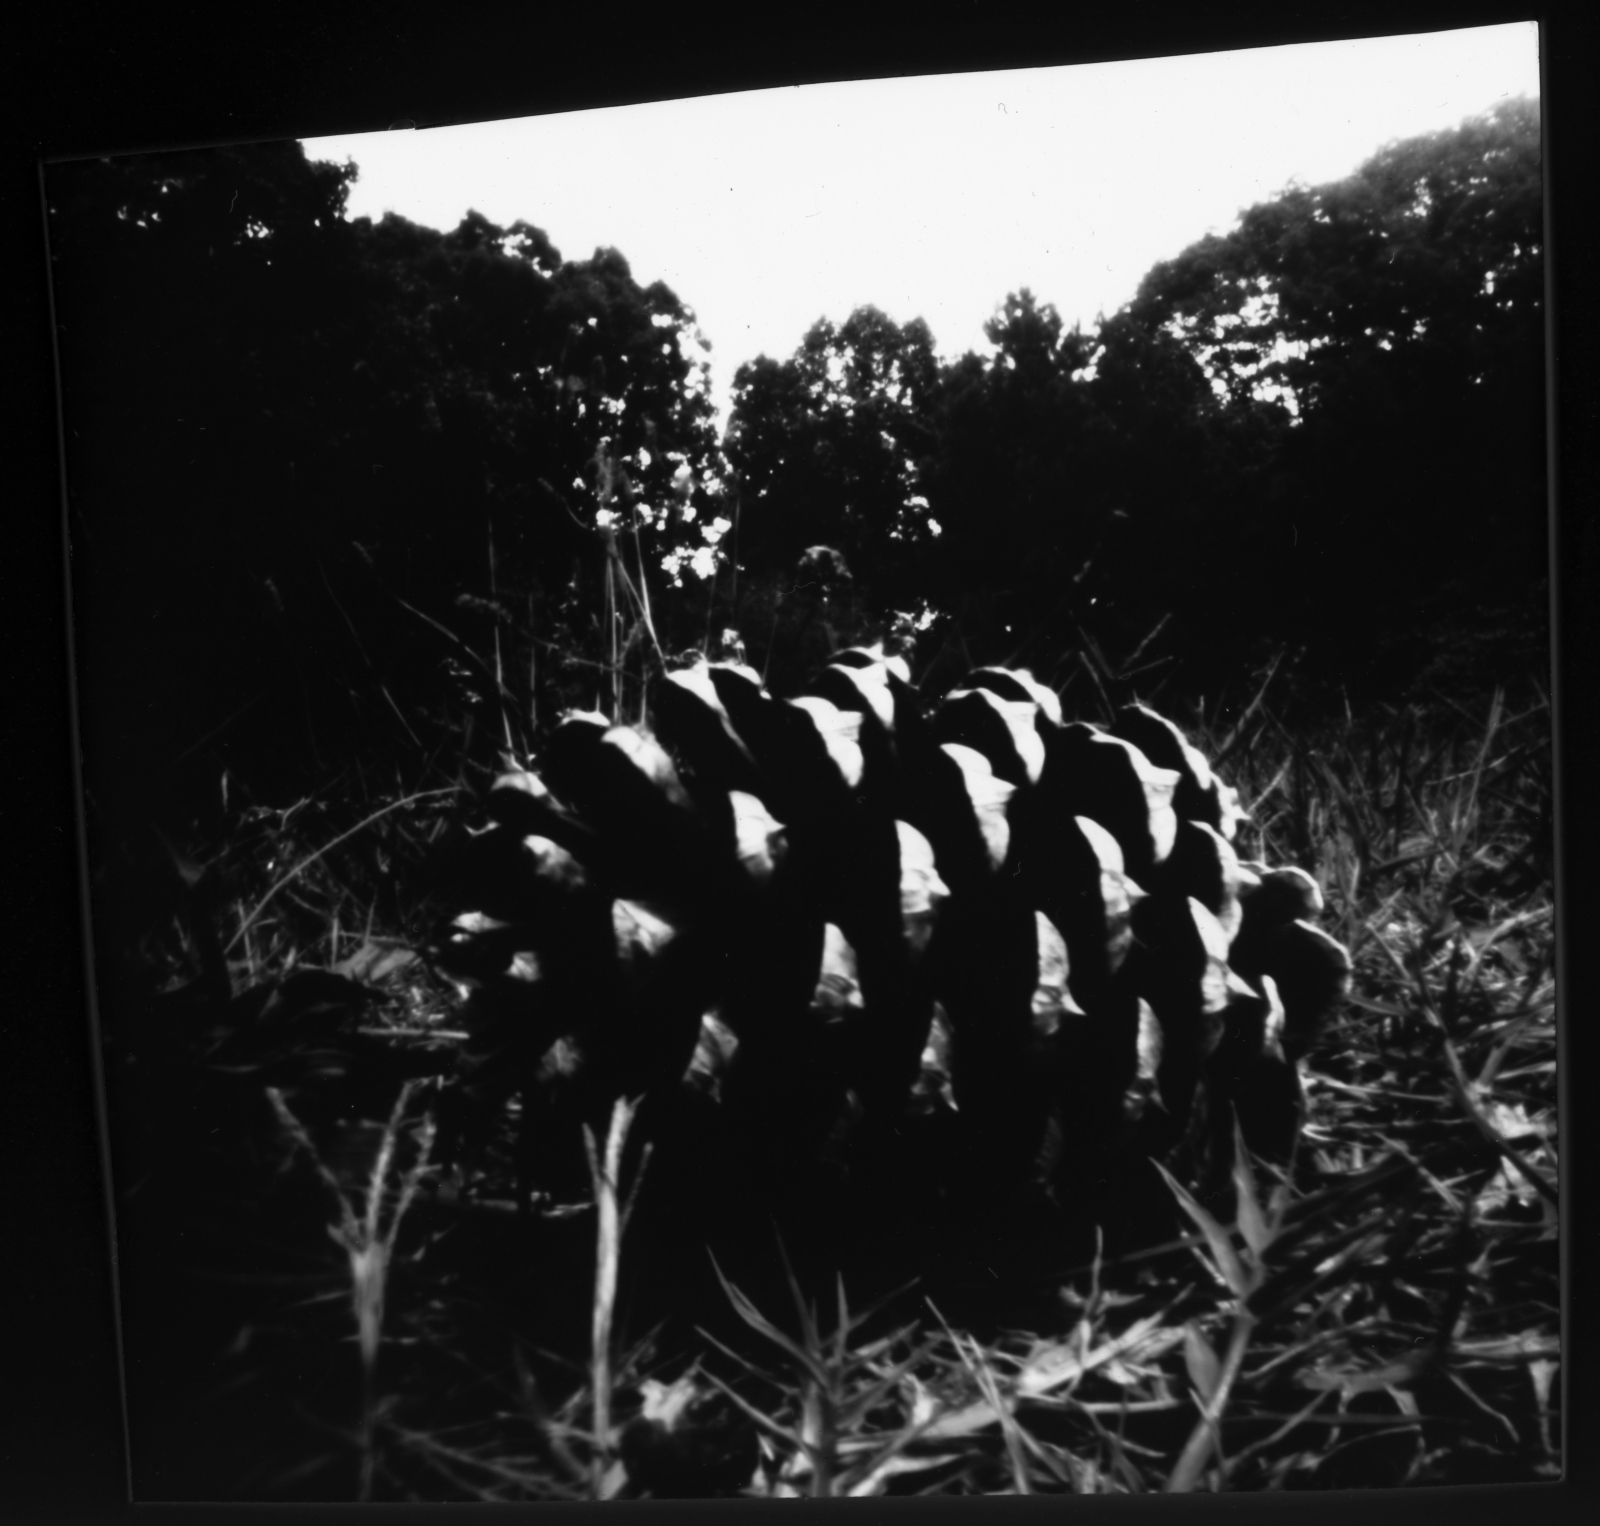 Art and Documentary Photography - Loading 7.18.17pinecone2posi.jpg